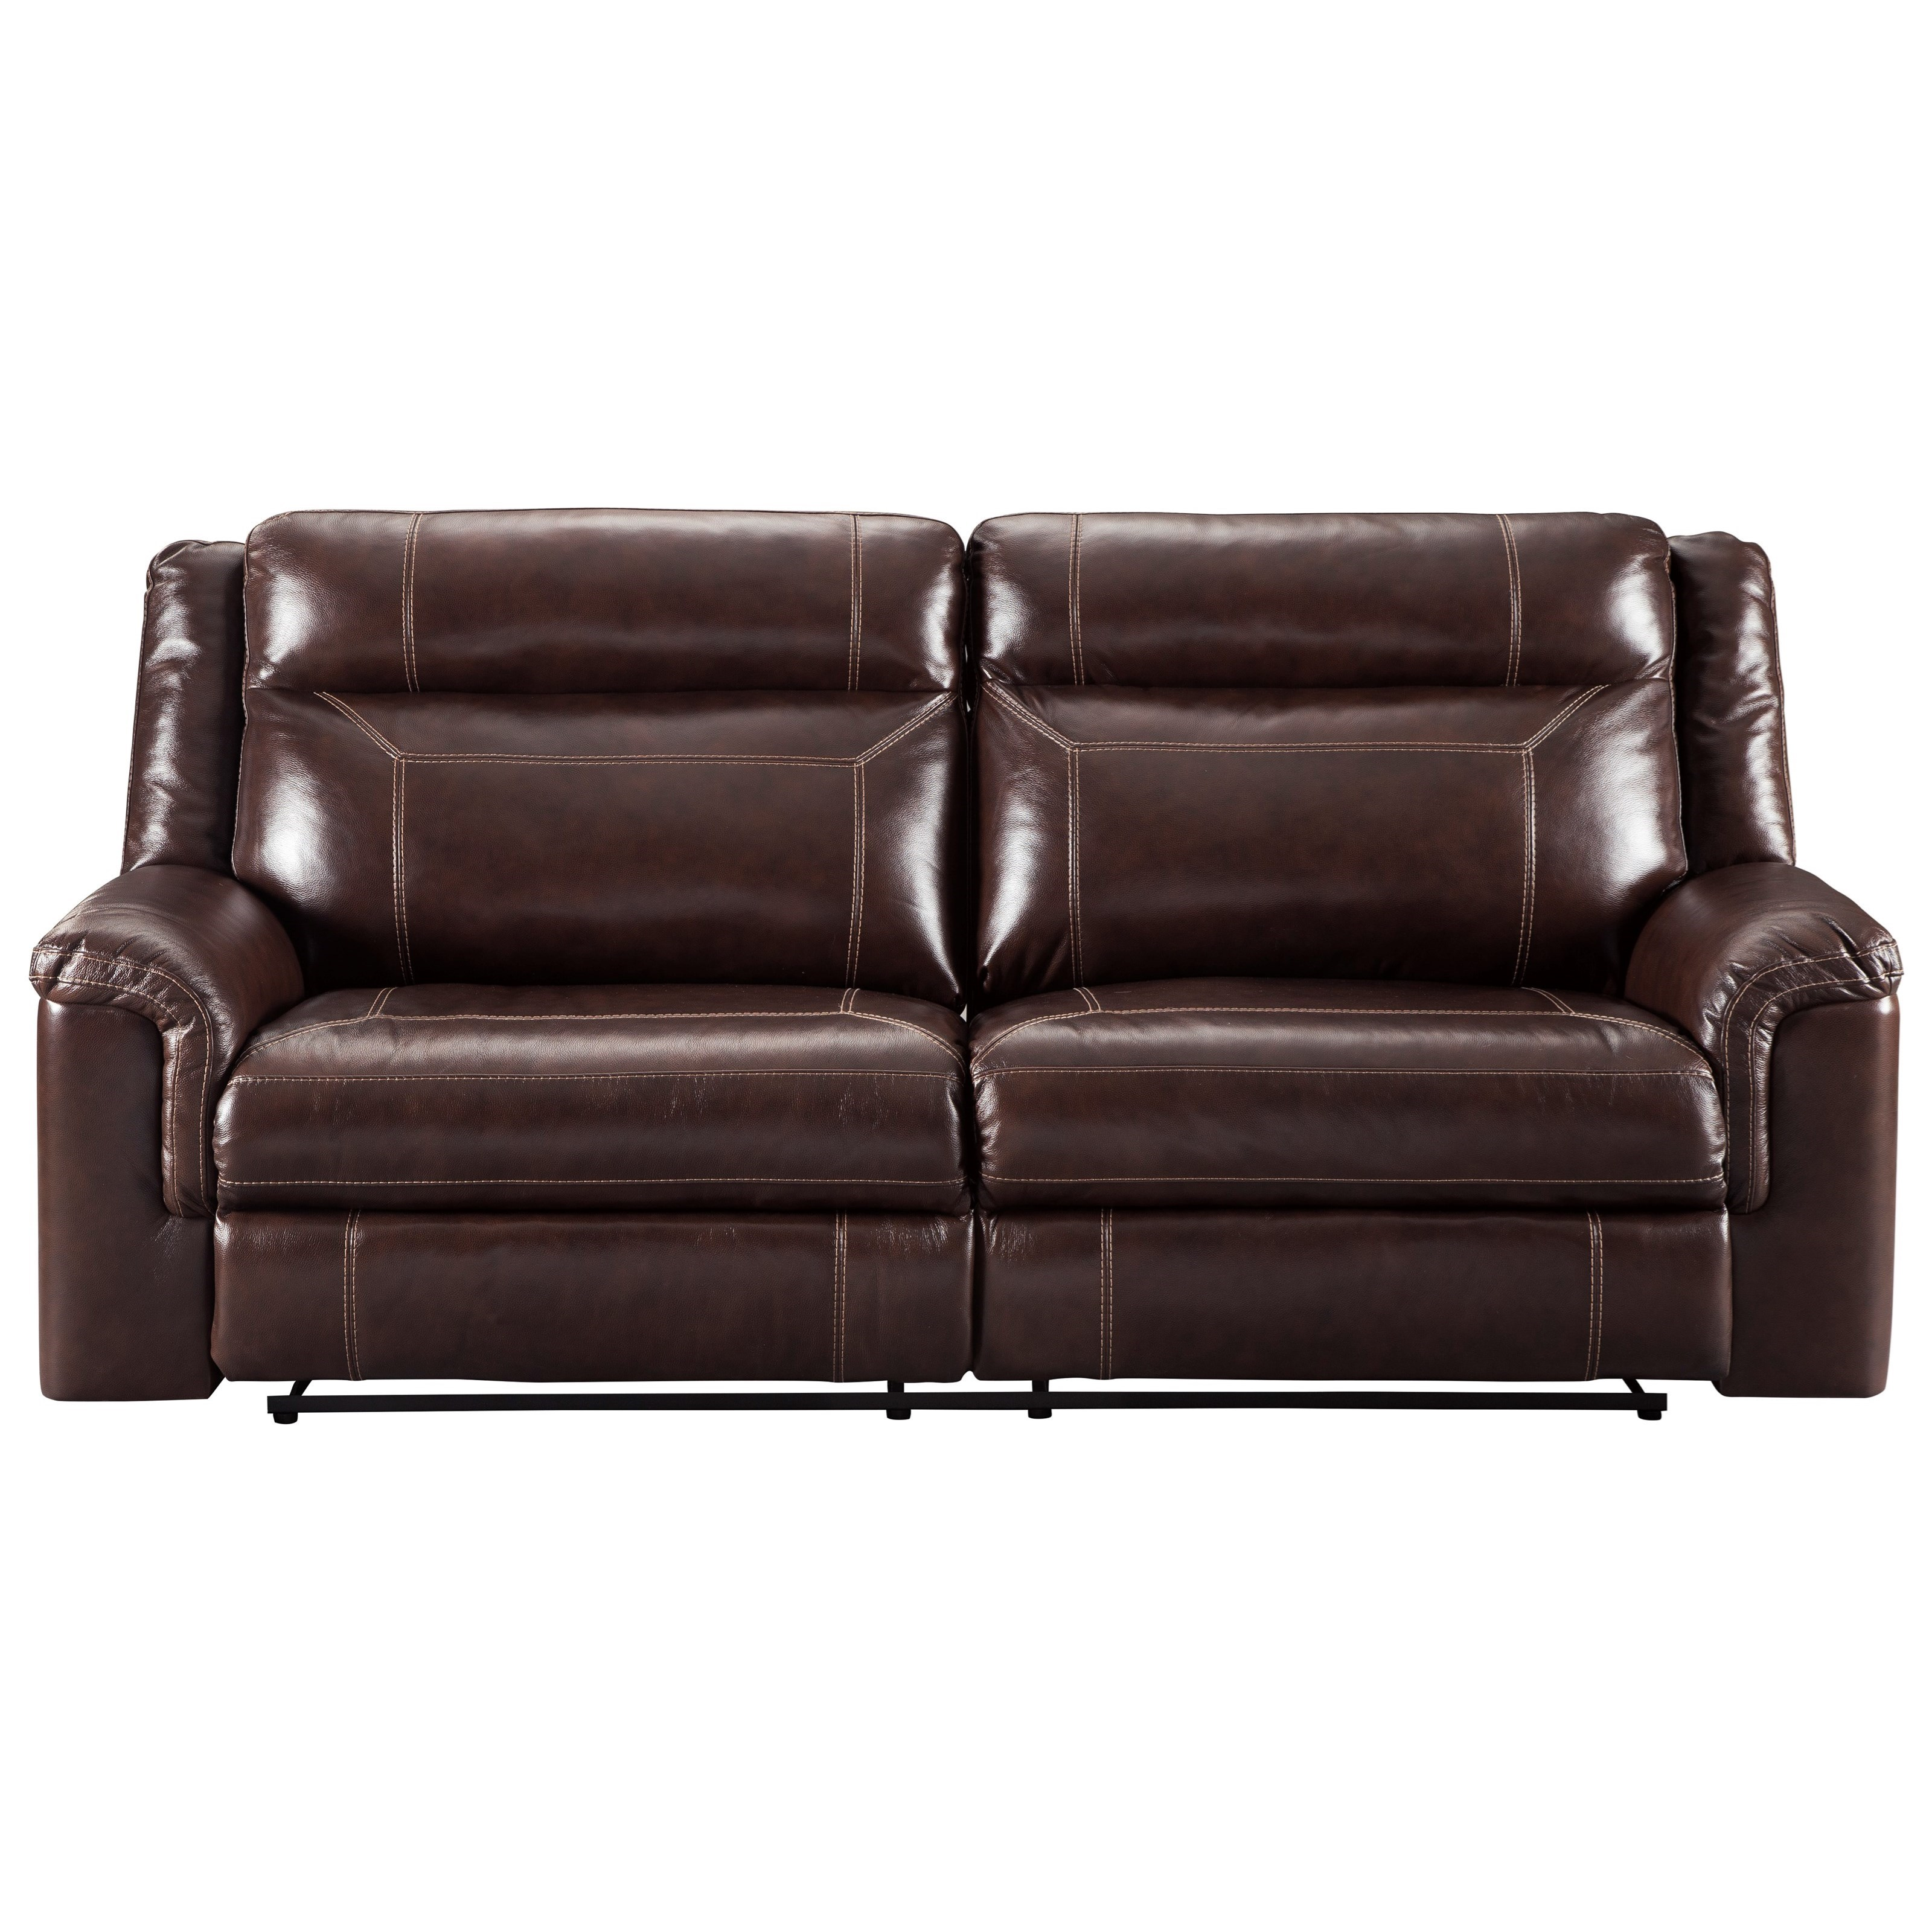 Signature Design By Ashley Wyline 7170115 Power Reclining Sofa With